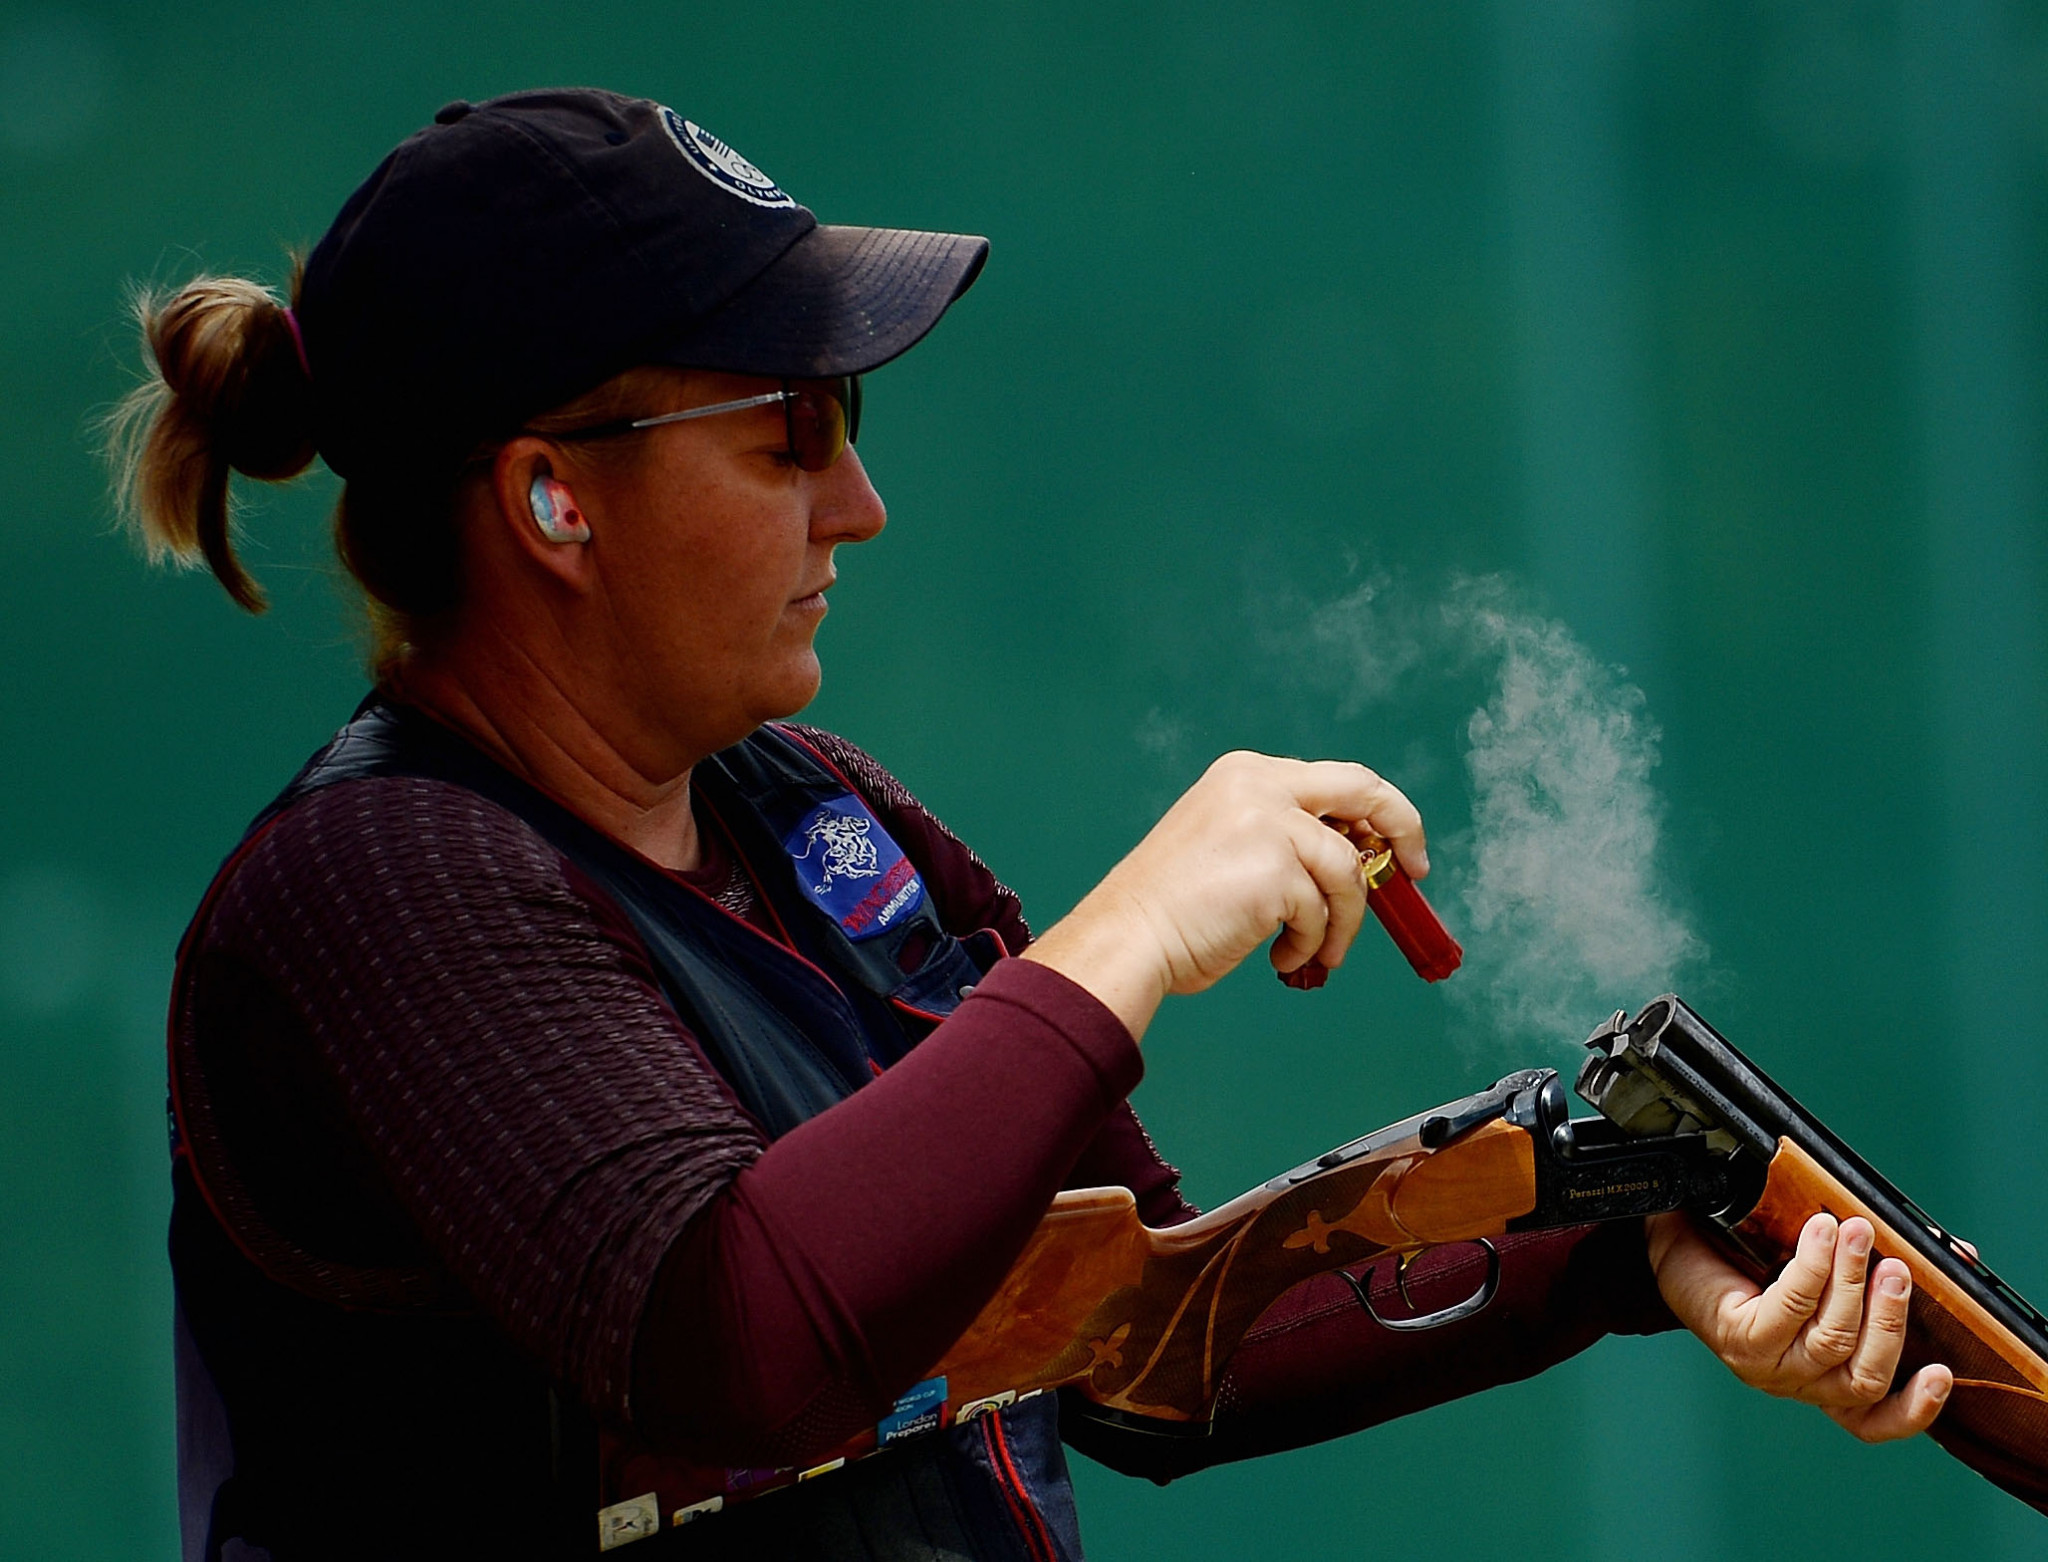 Cool-hand Rhode takes third skeet World Cup gold in Tucson shoot-off